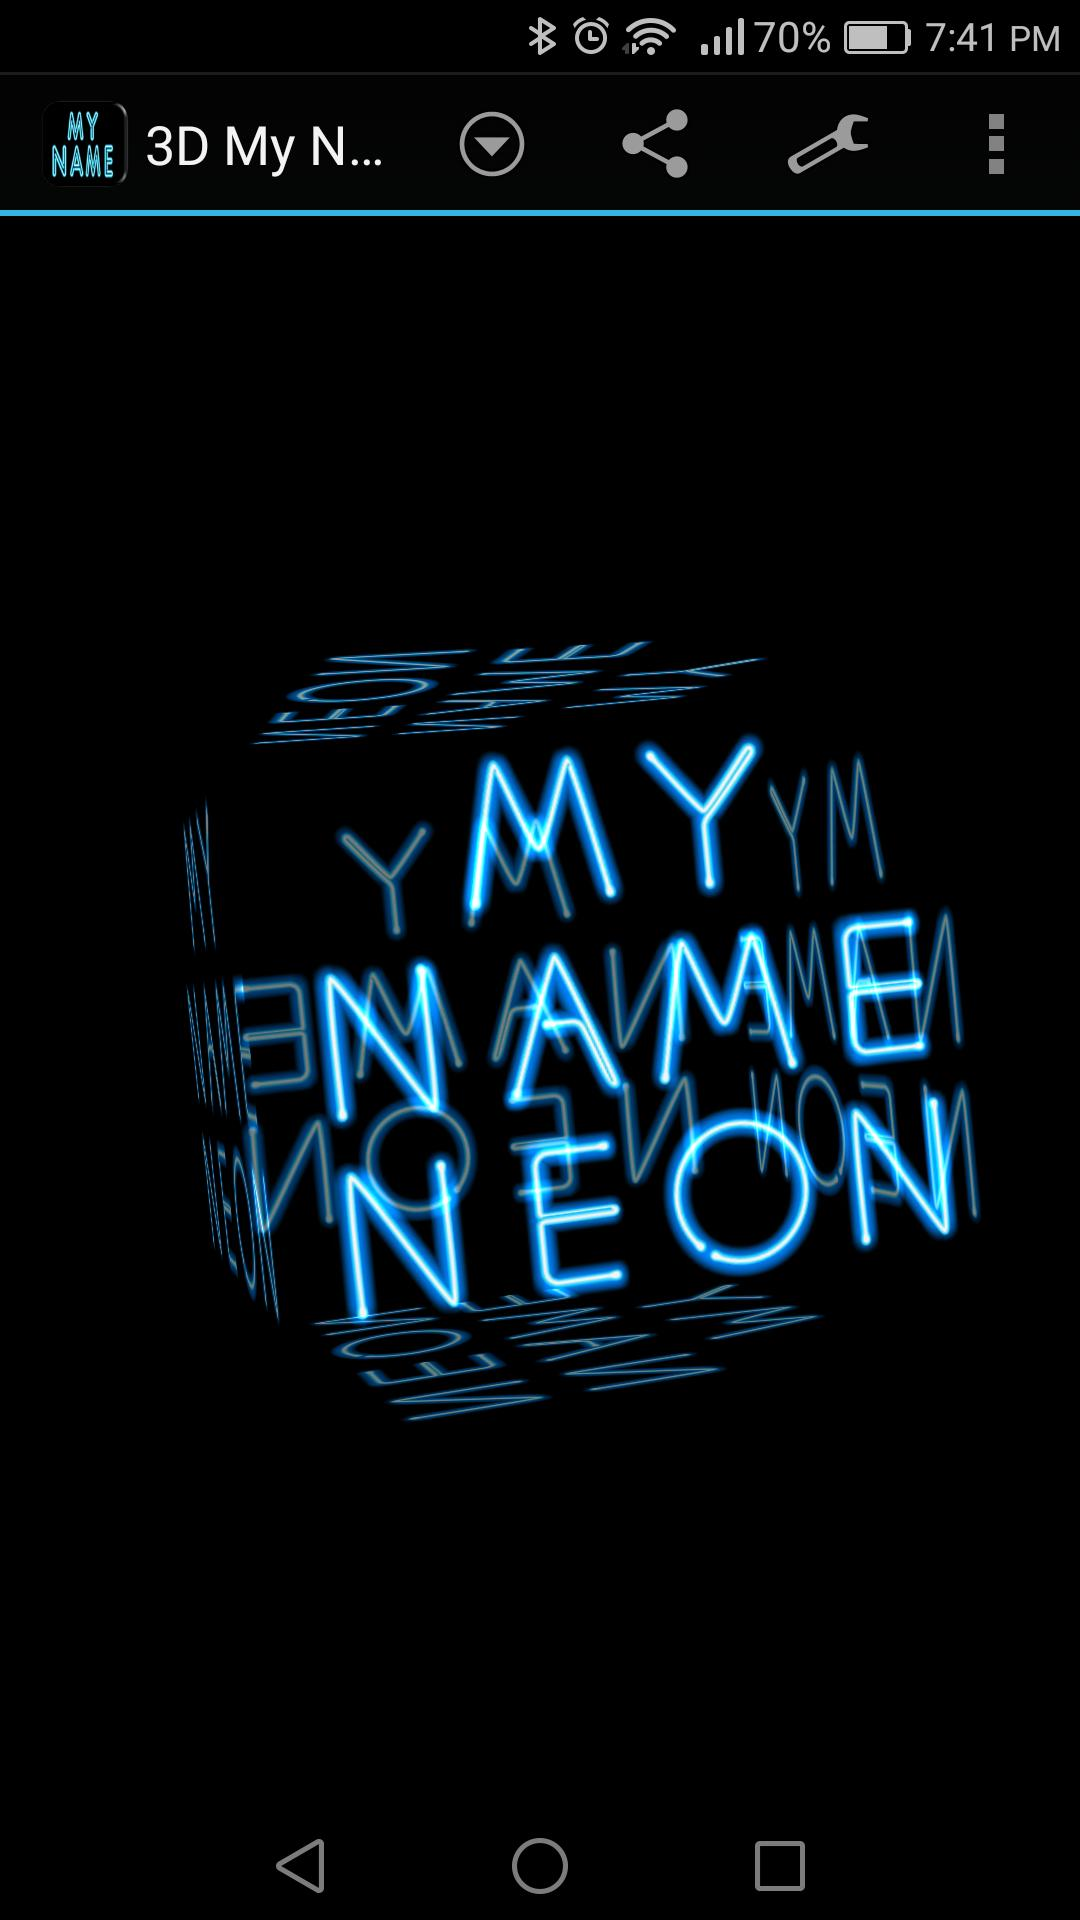 3D My Name Neon Live Wallpaper for Android - APK Download